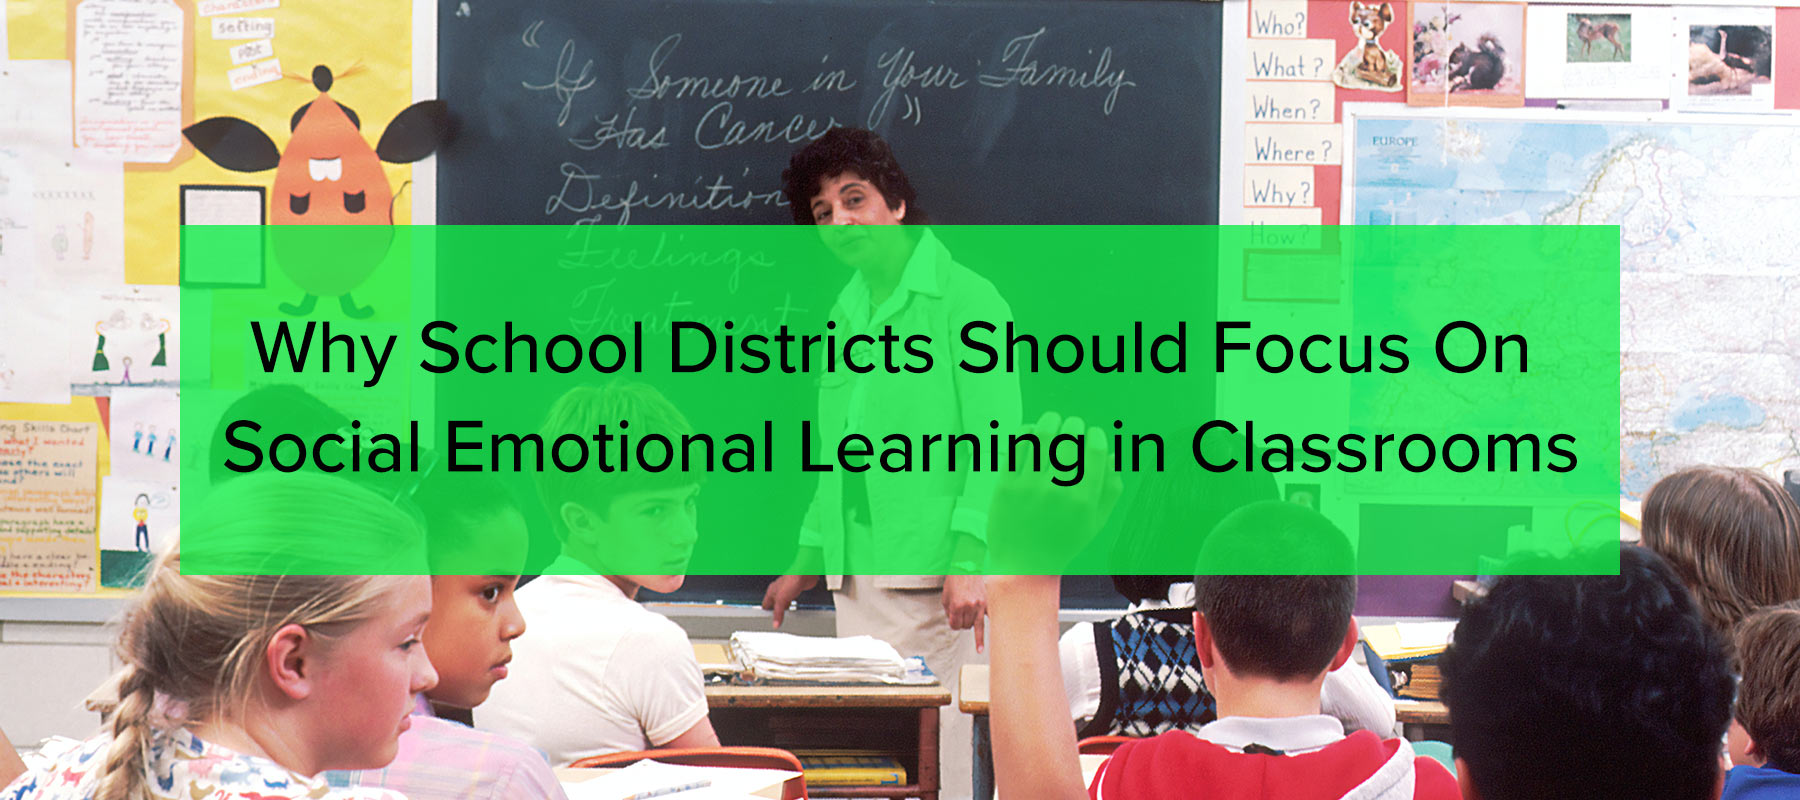 social emotional learning in classrooms.